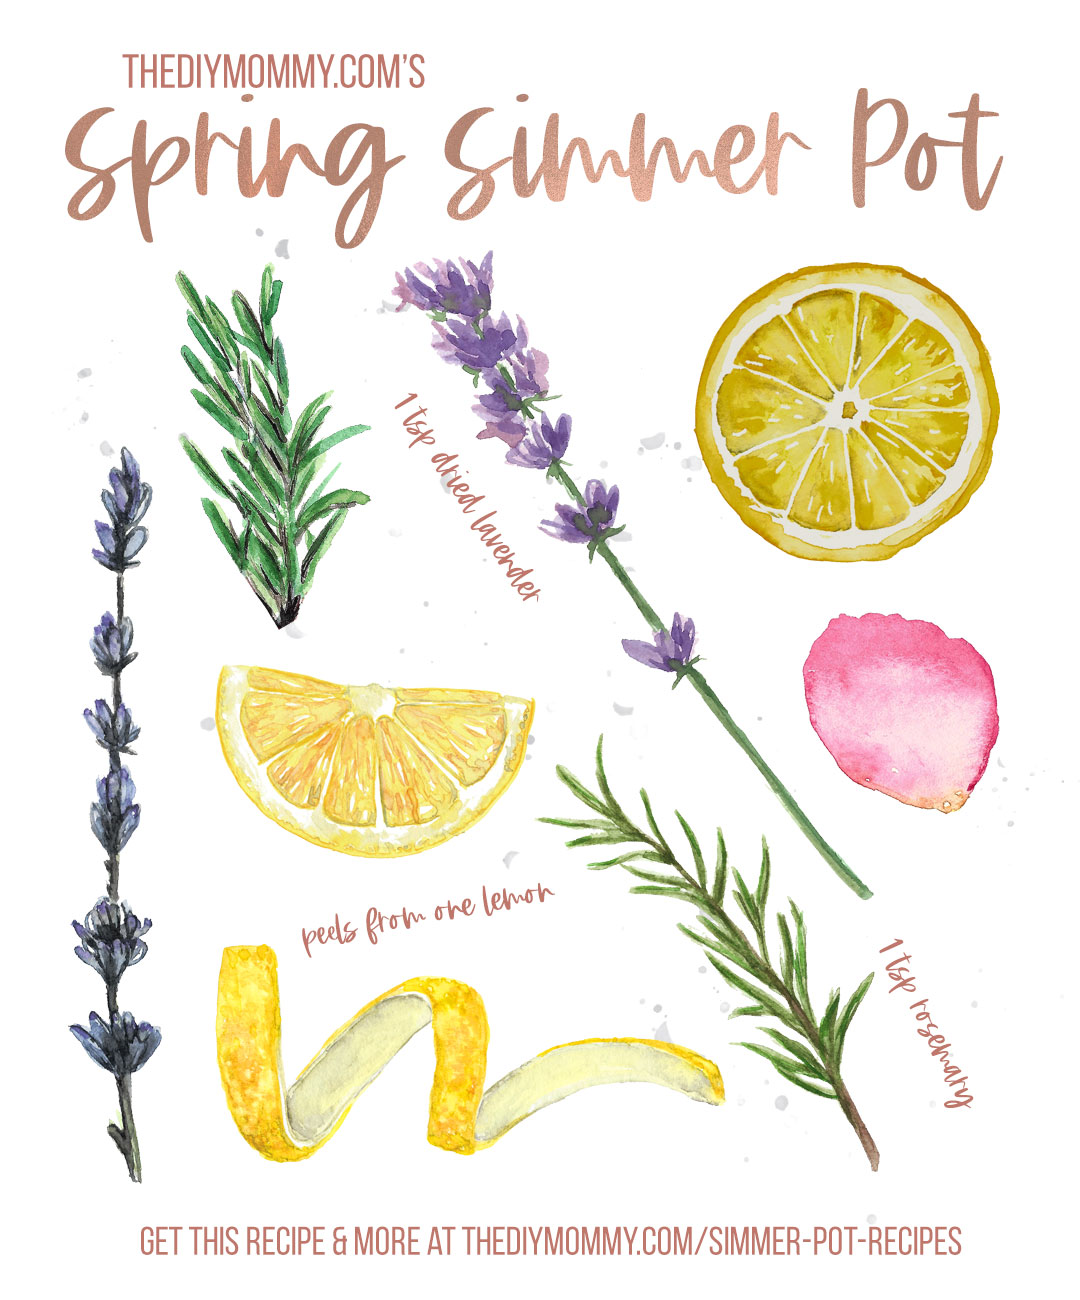 Combine these ingredients in 2 cups of simmering water to create a fresh, clean Spring scent in your home. Full recipe at thediymommy.com